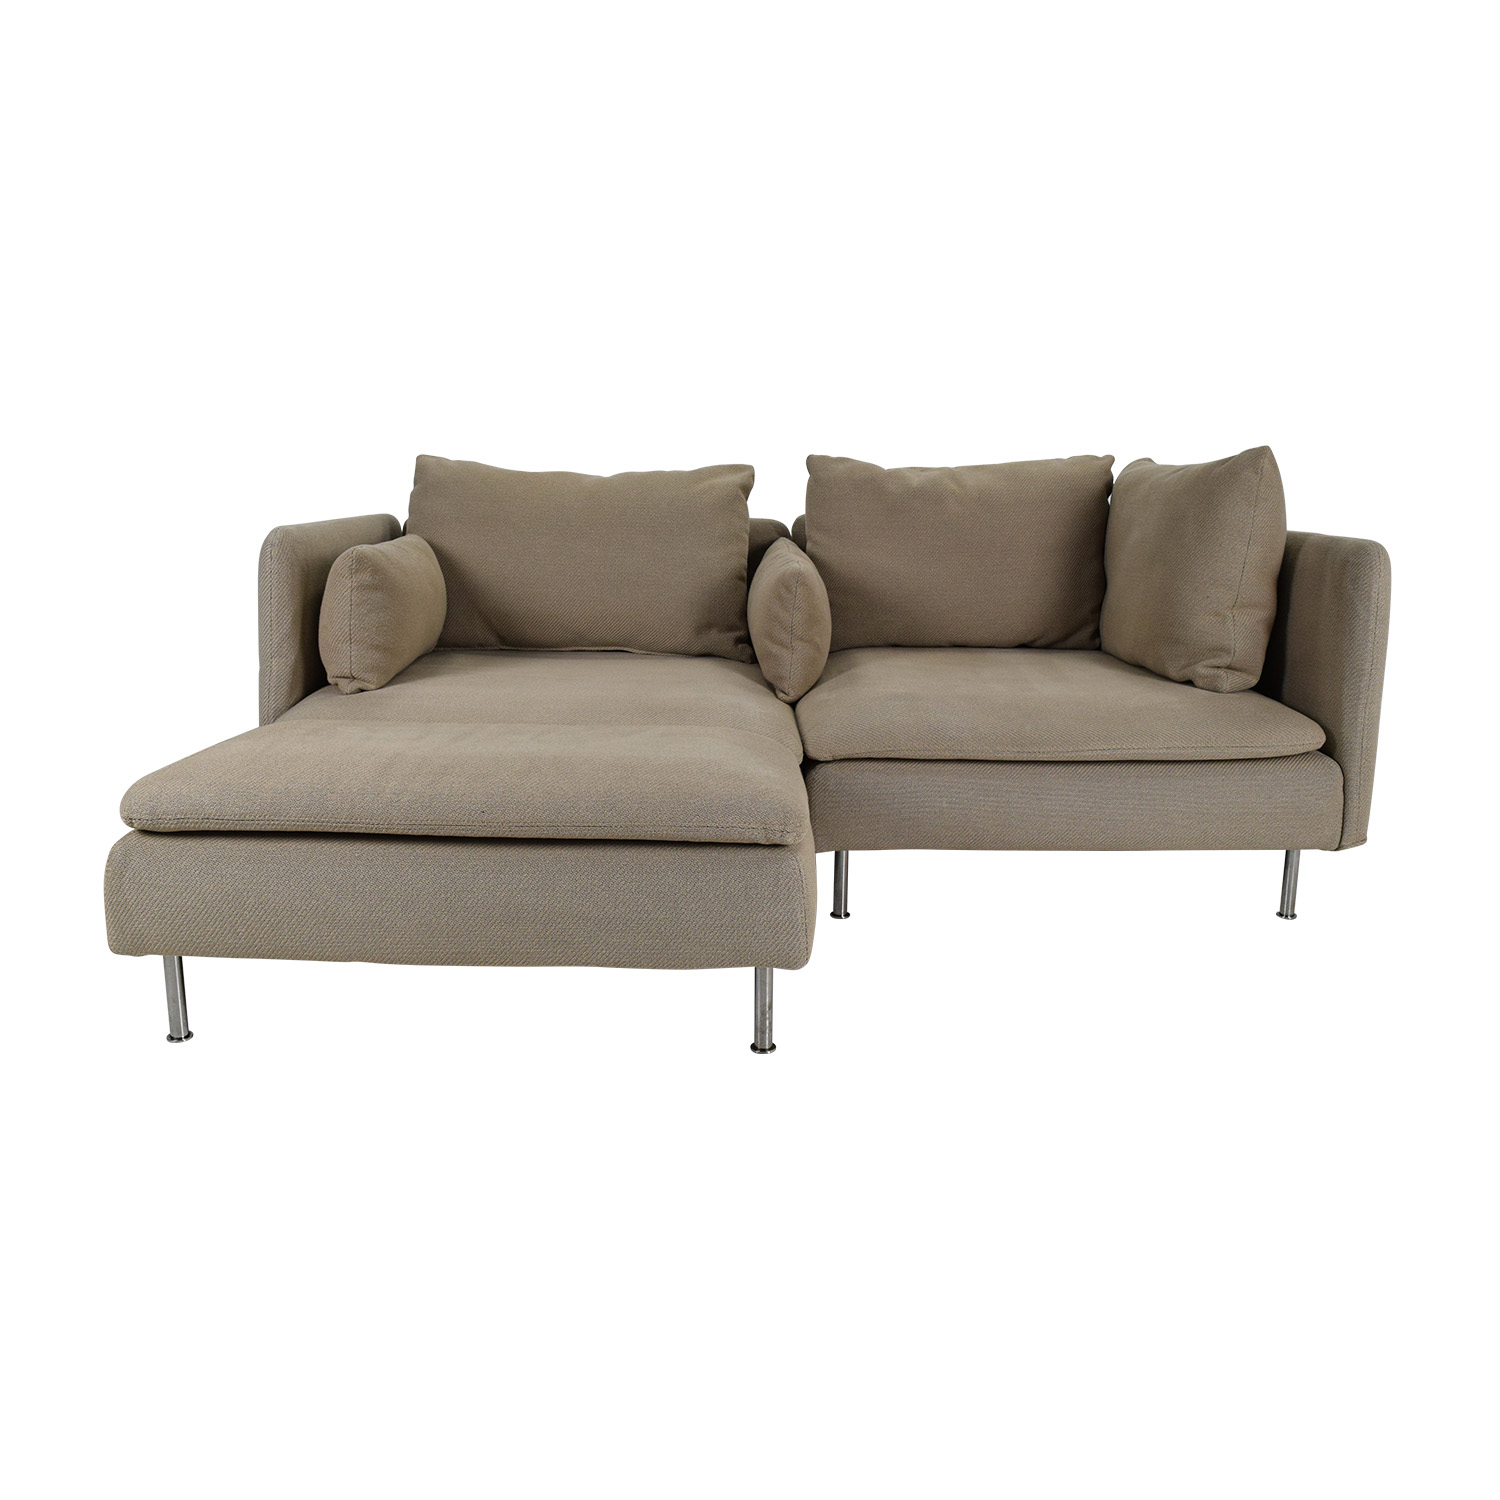 50 off ikea soderhamn sectional sofa sofas for Ikea sofa set